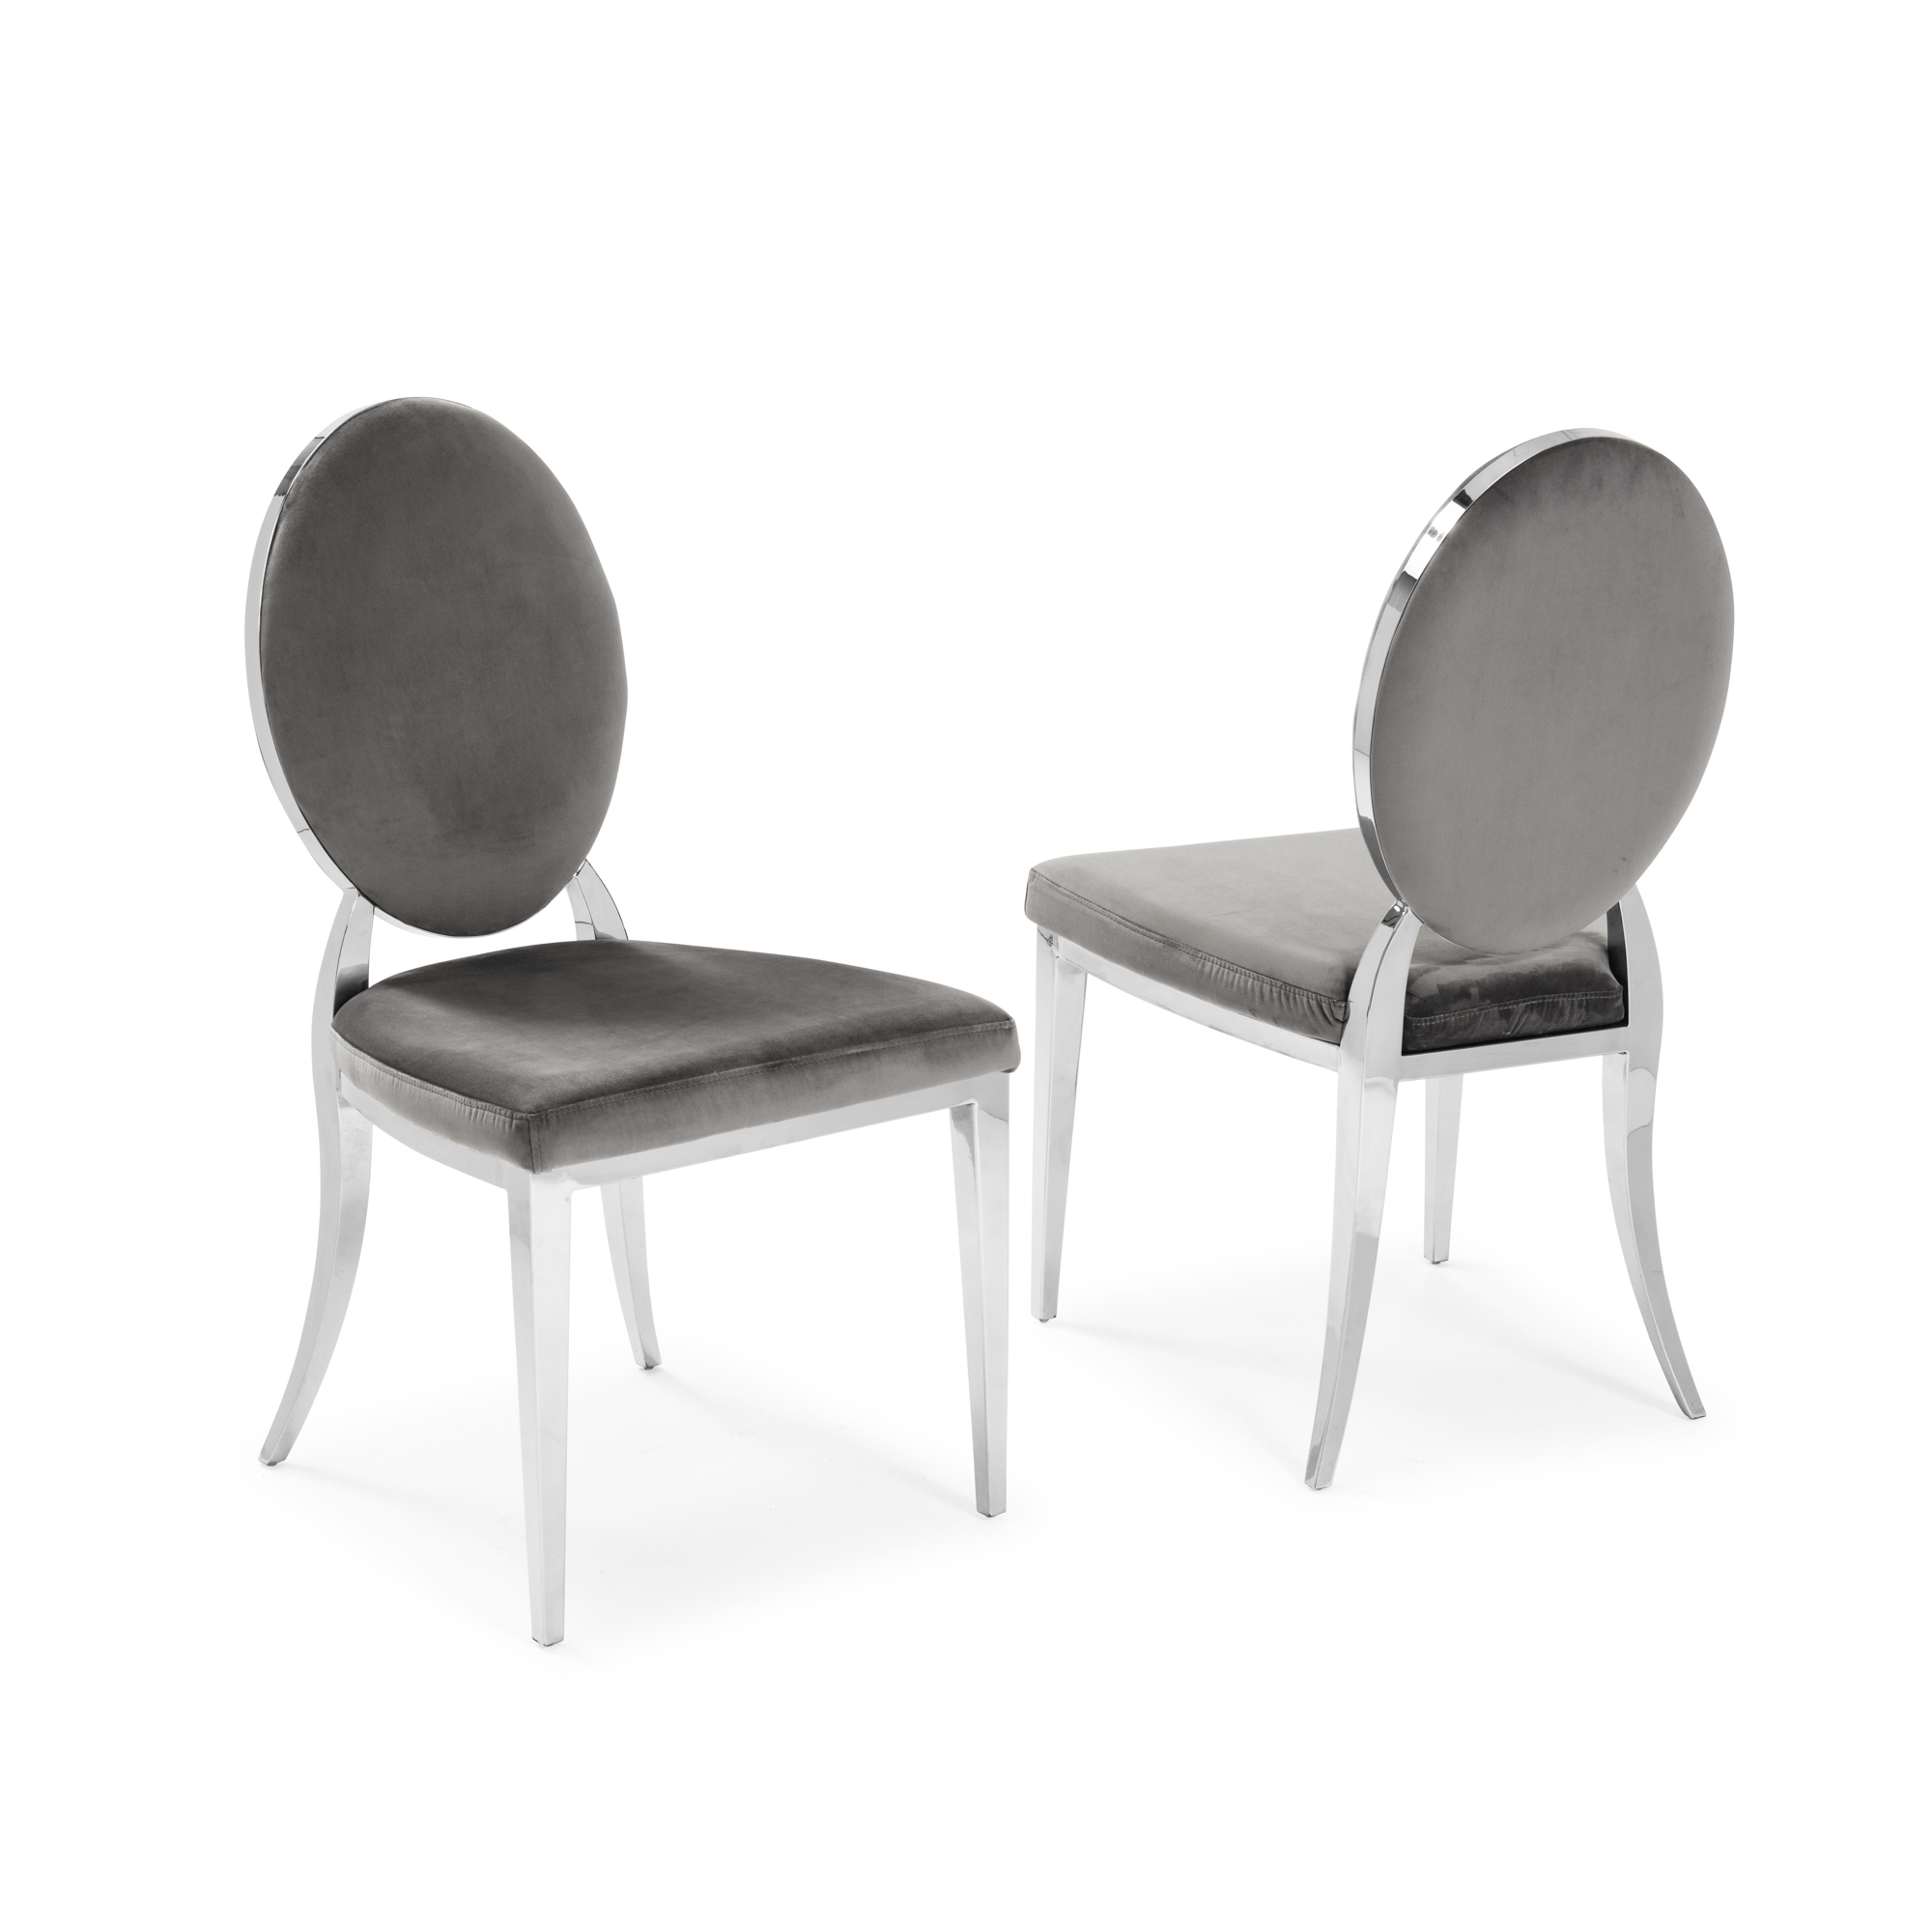 Small 1.06m Round Grey Marble Dining Table & Chairs – 4x Grey Velvet Dining Chairs